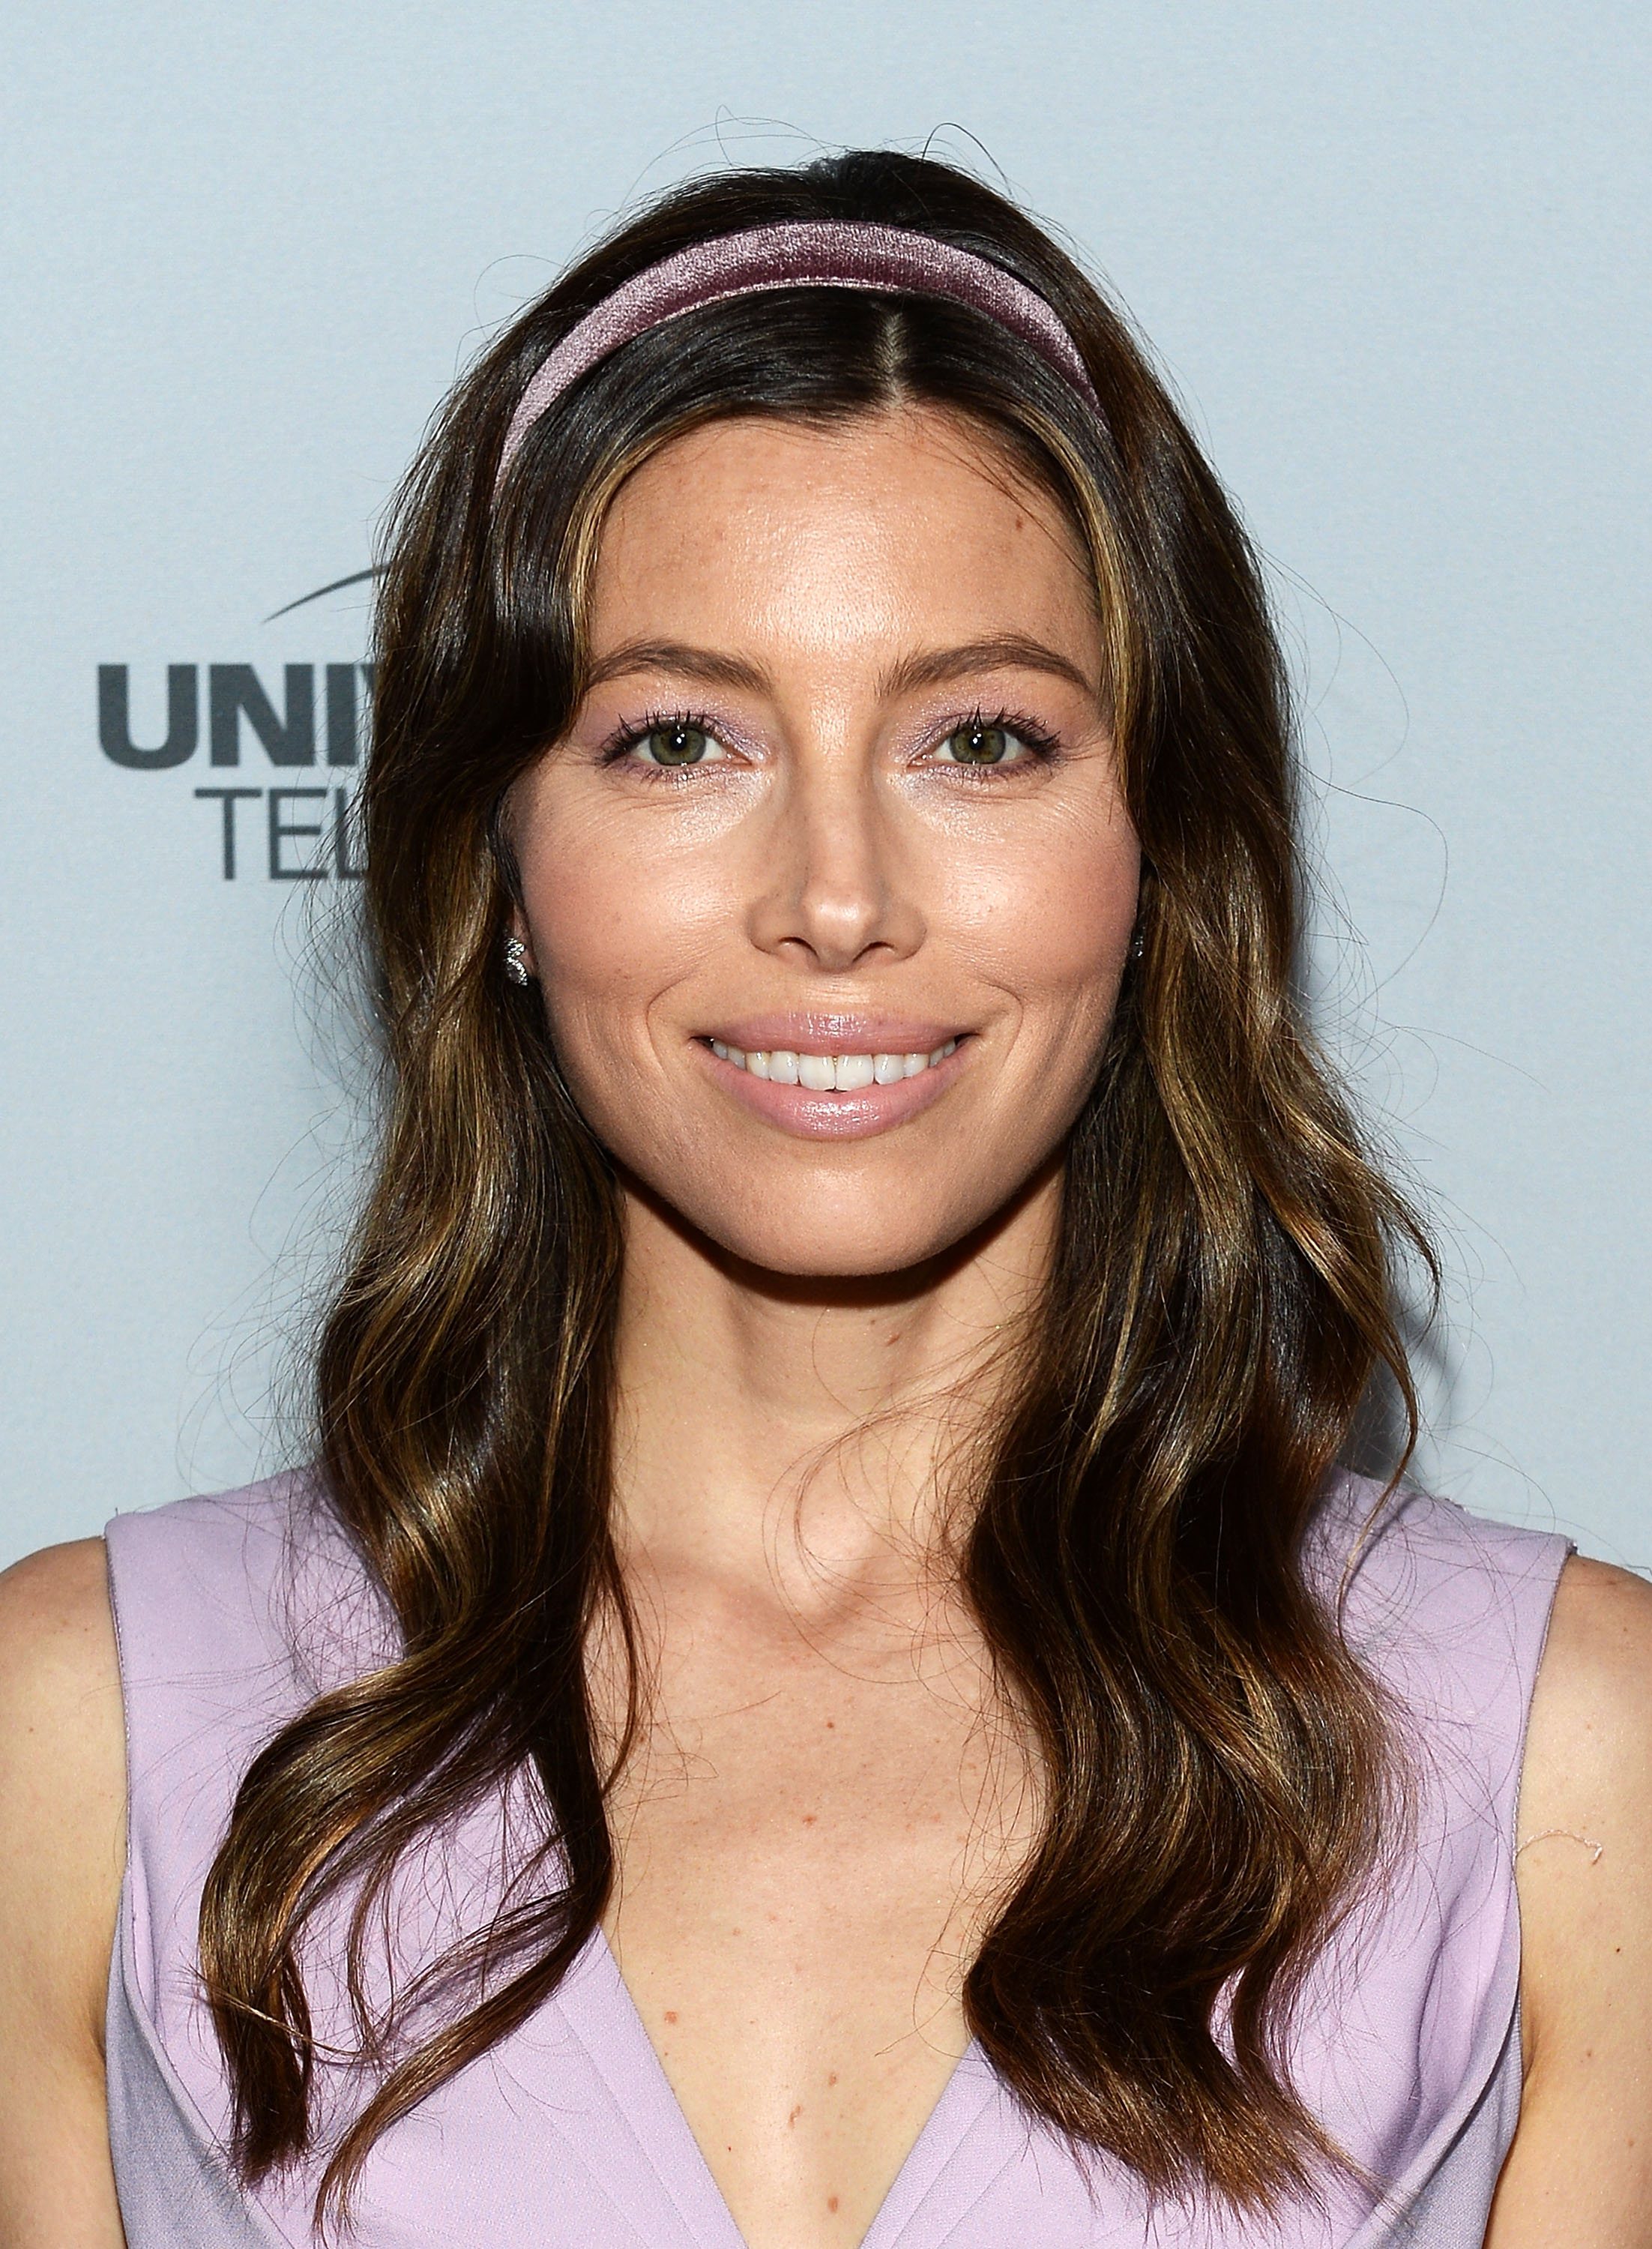 """<p>Finding a universally flattering beauty product is a bit like trying to find a half-priced Hermes Birkin, but if there was a close contender it would be plum eye shadow.</p> <p>Actress Jessica Biel made a strong case for an all-over plum look at a press junket in Los Angeles earlier this week.</p> <p><em>The Sinner</em> starpaired her two-piece lilac outfit from Zuhair Murad with a subtle splash of plum eyeshadow across her lidsand echoed the same delicate shade of mauve on her cheeks.</p> <p>Rich, elegant, and originally associated with royalty, this isn't a colour that is just for the A-list. </p> <p>Deep purple shades suits every eye colour and skin tone.</p> <p>""""Plum is full of warm undertones that make every colour pop,"""" senior makeup artistSusan Markovic told 9Style.</p> <p>Click through to see our favourite plum eye shadows that will make your eyes pop.</p>"""